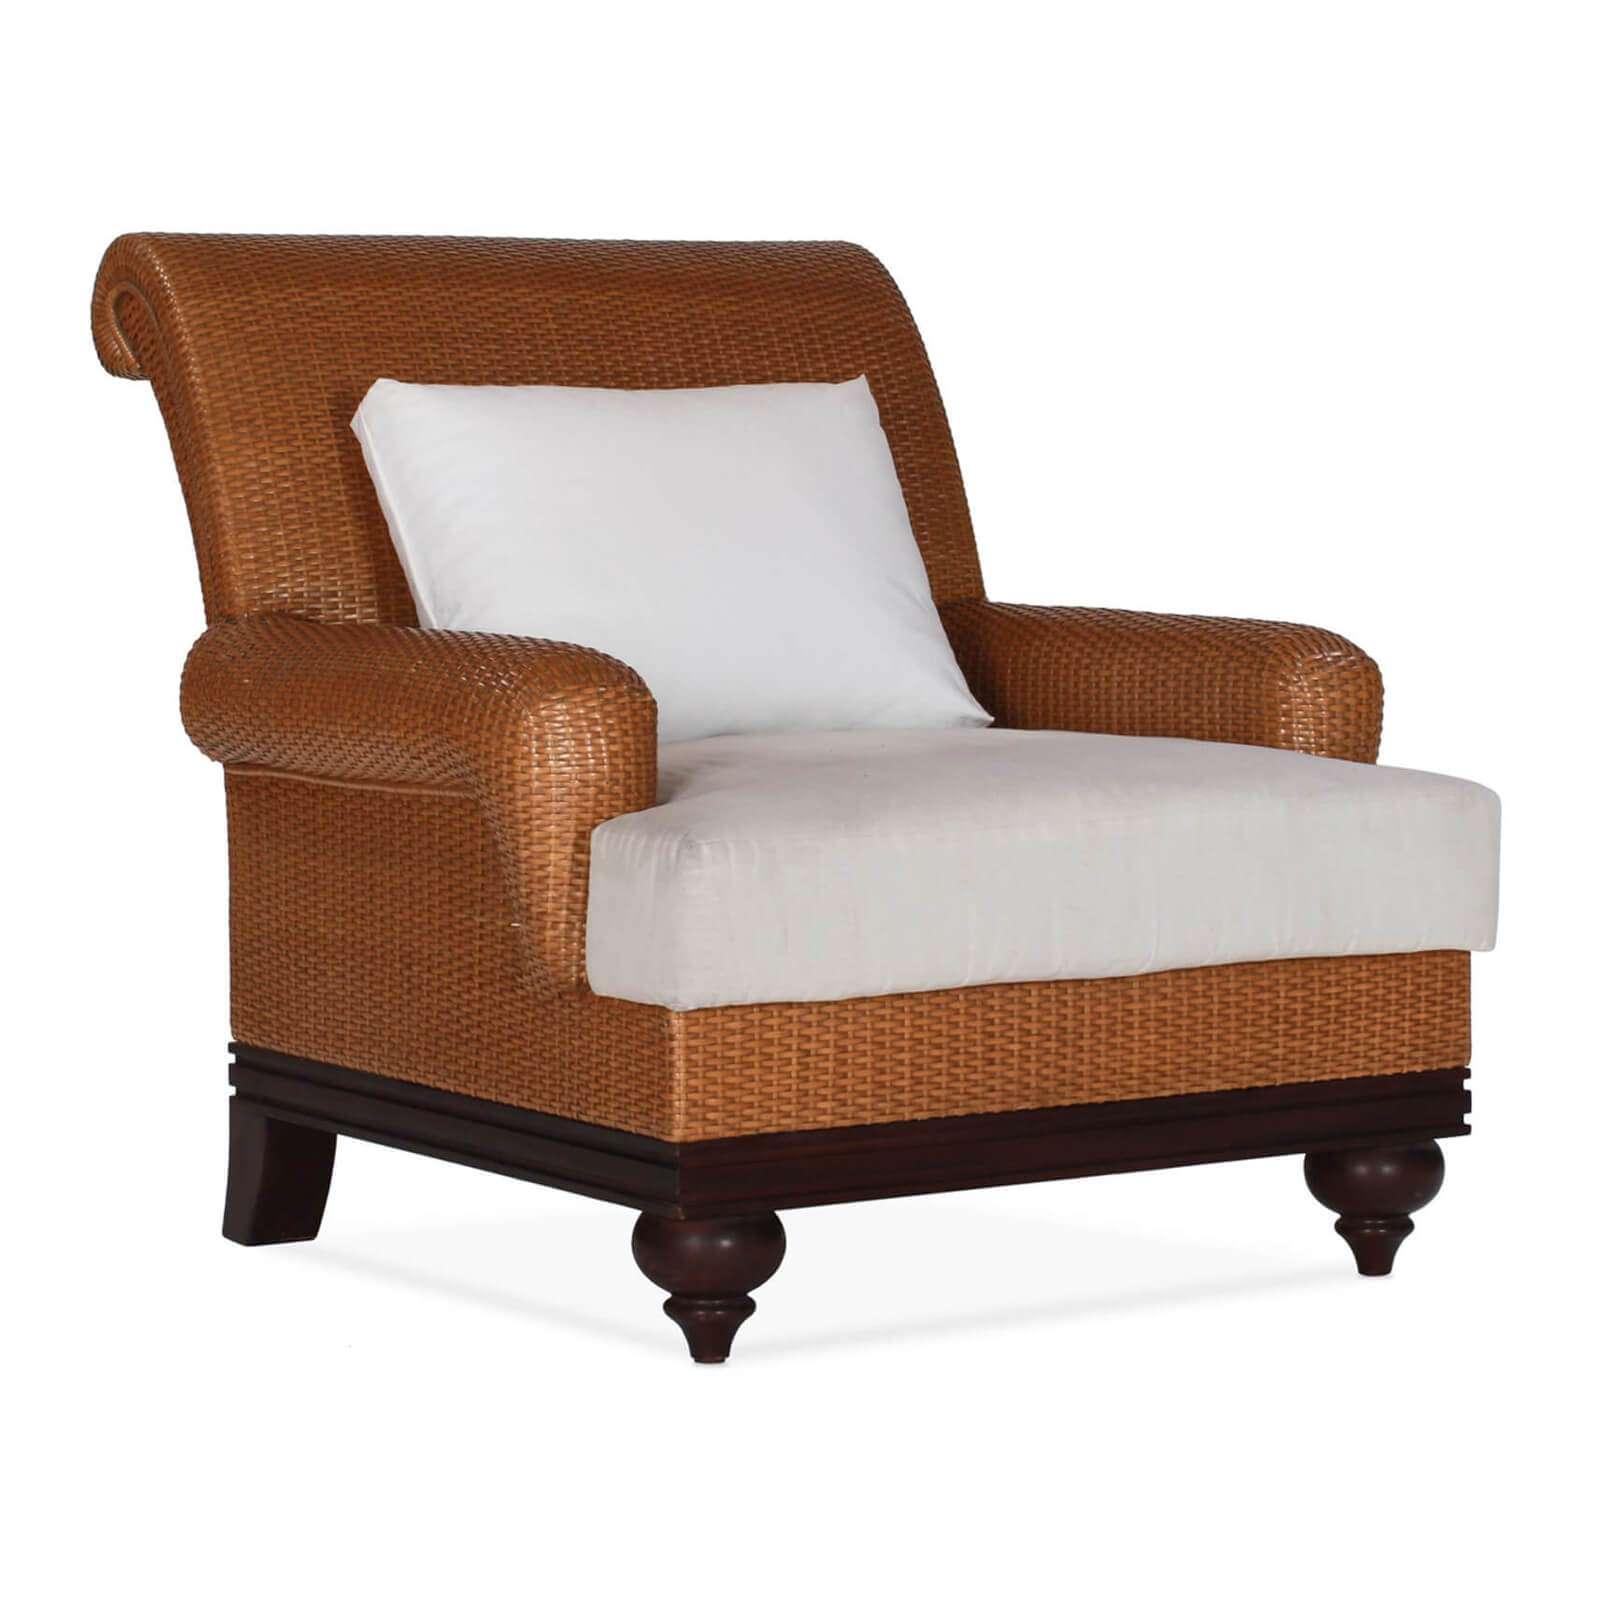 PLANTATION CLUB CHAIR